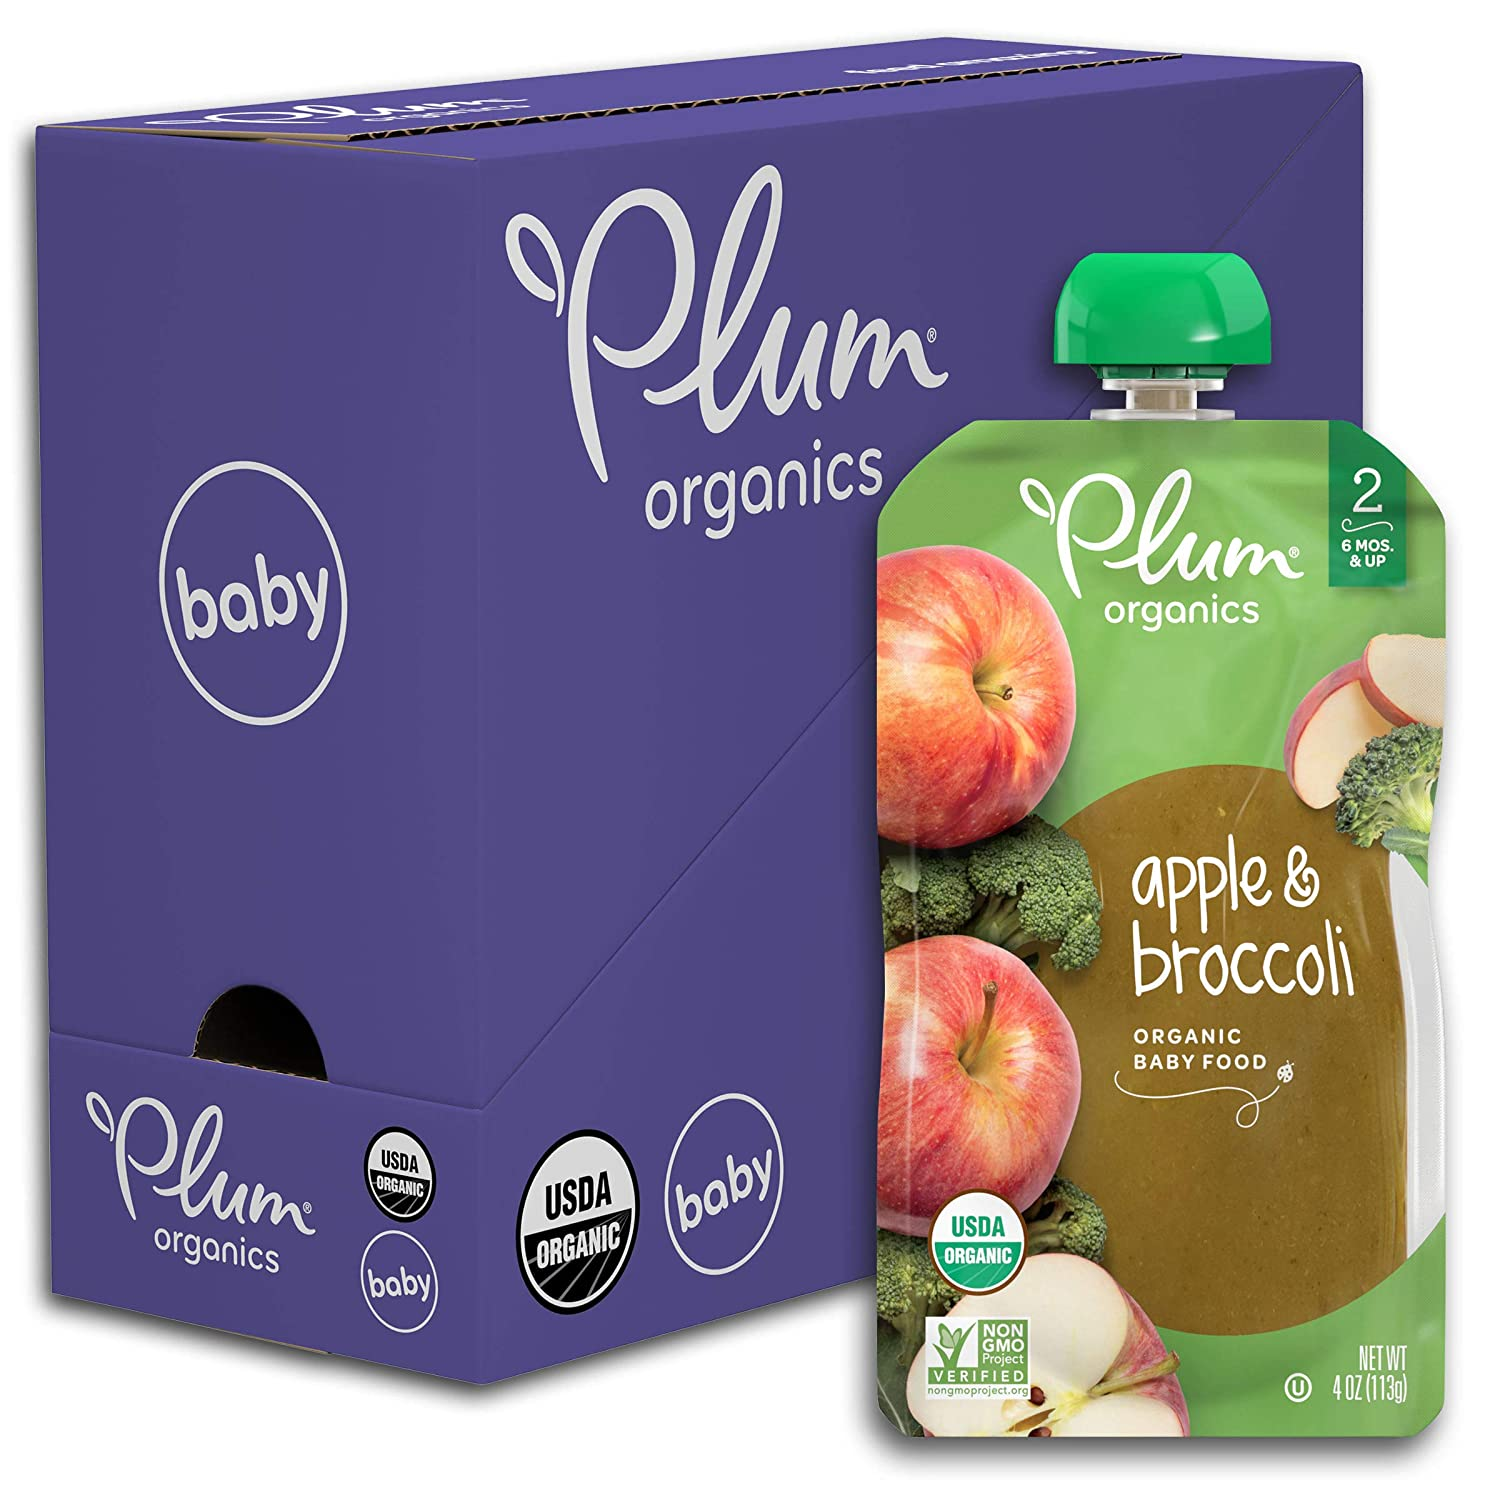 Plum Organics Stage 2 Organic Baby Food, Apple & Broccoli, 4 Ounce Pouch (Pack of 6)